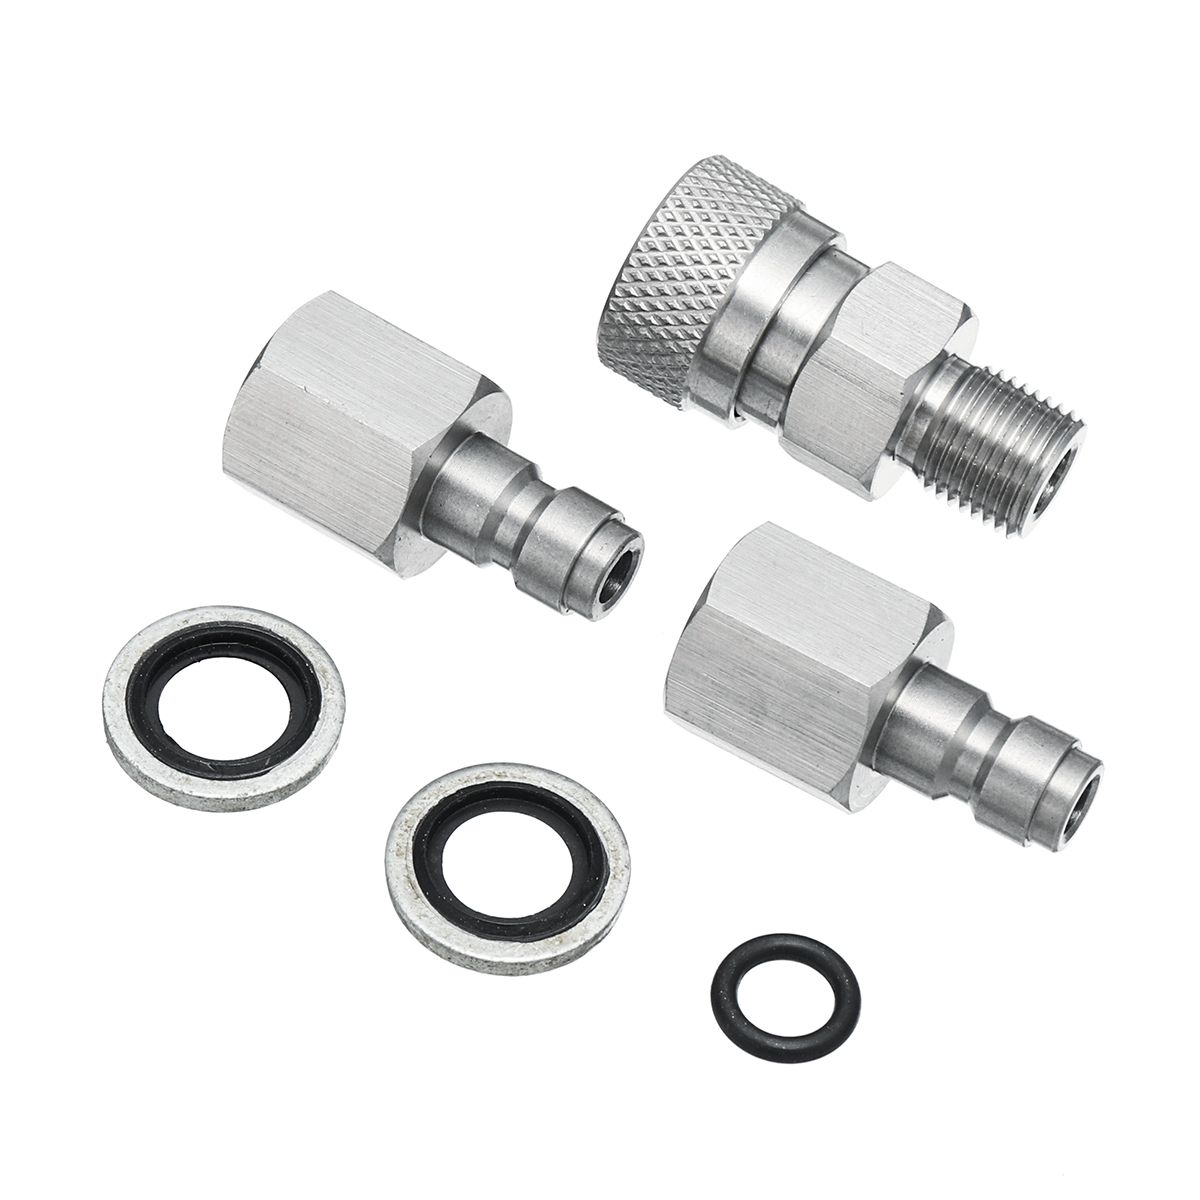 Air Gu n Filling Quick Connect Adapter Stainless PCP 18 BSPP with Plugs Fittings Toy Gu n Connector Coupler